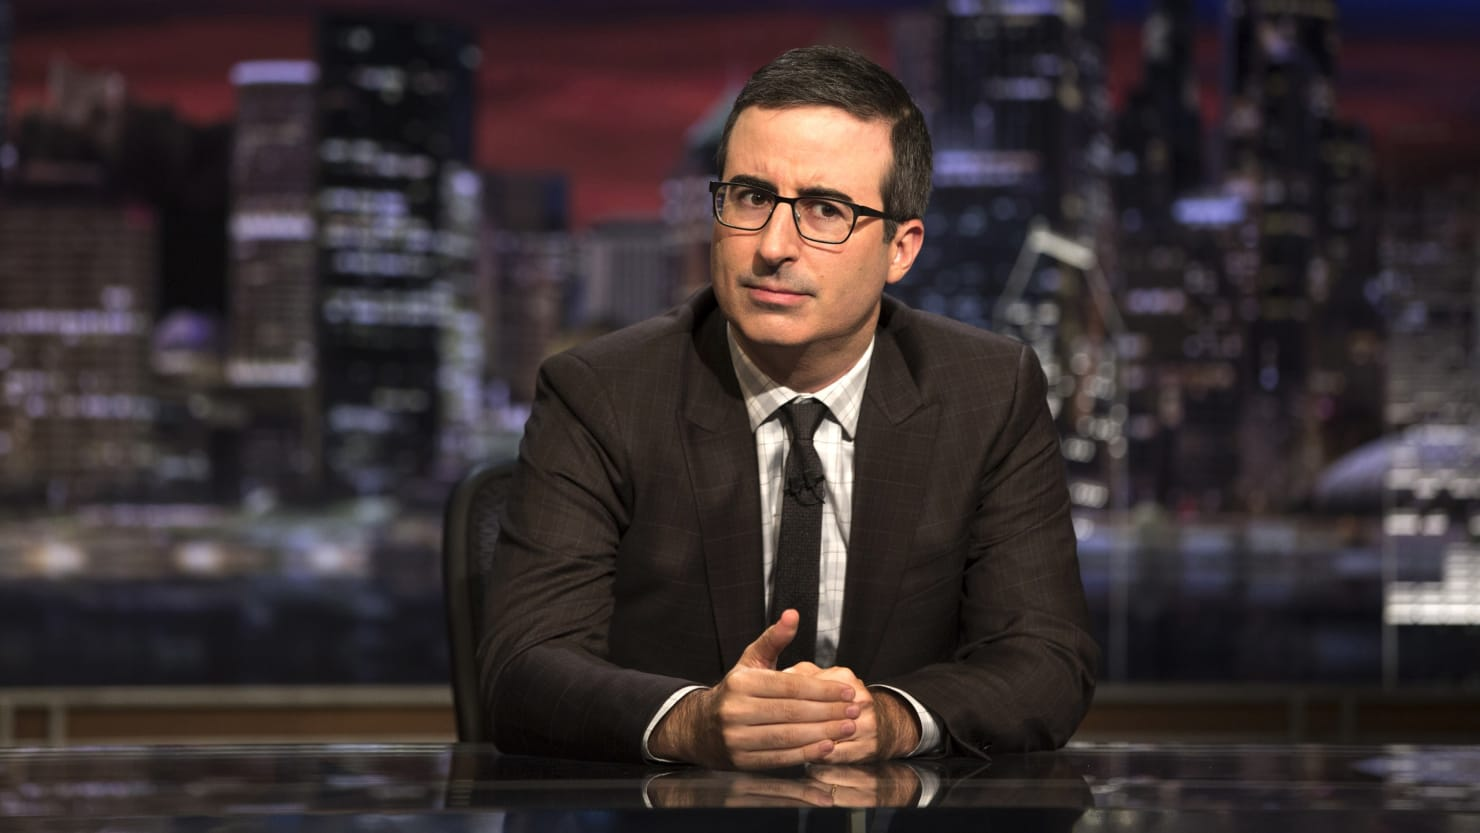 John Oliver Torches Trump For Wanting to Buy Greenland: It's 'Icy' and 'Distant' Like Melania